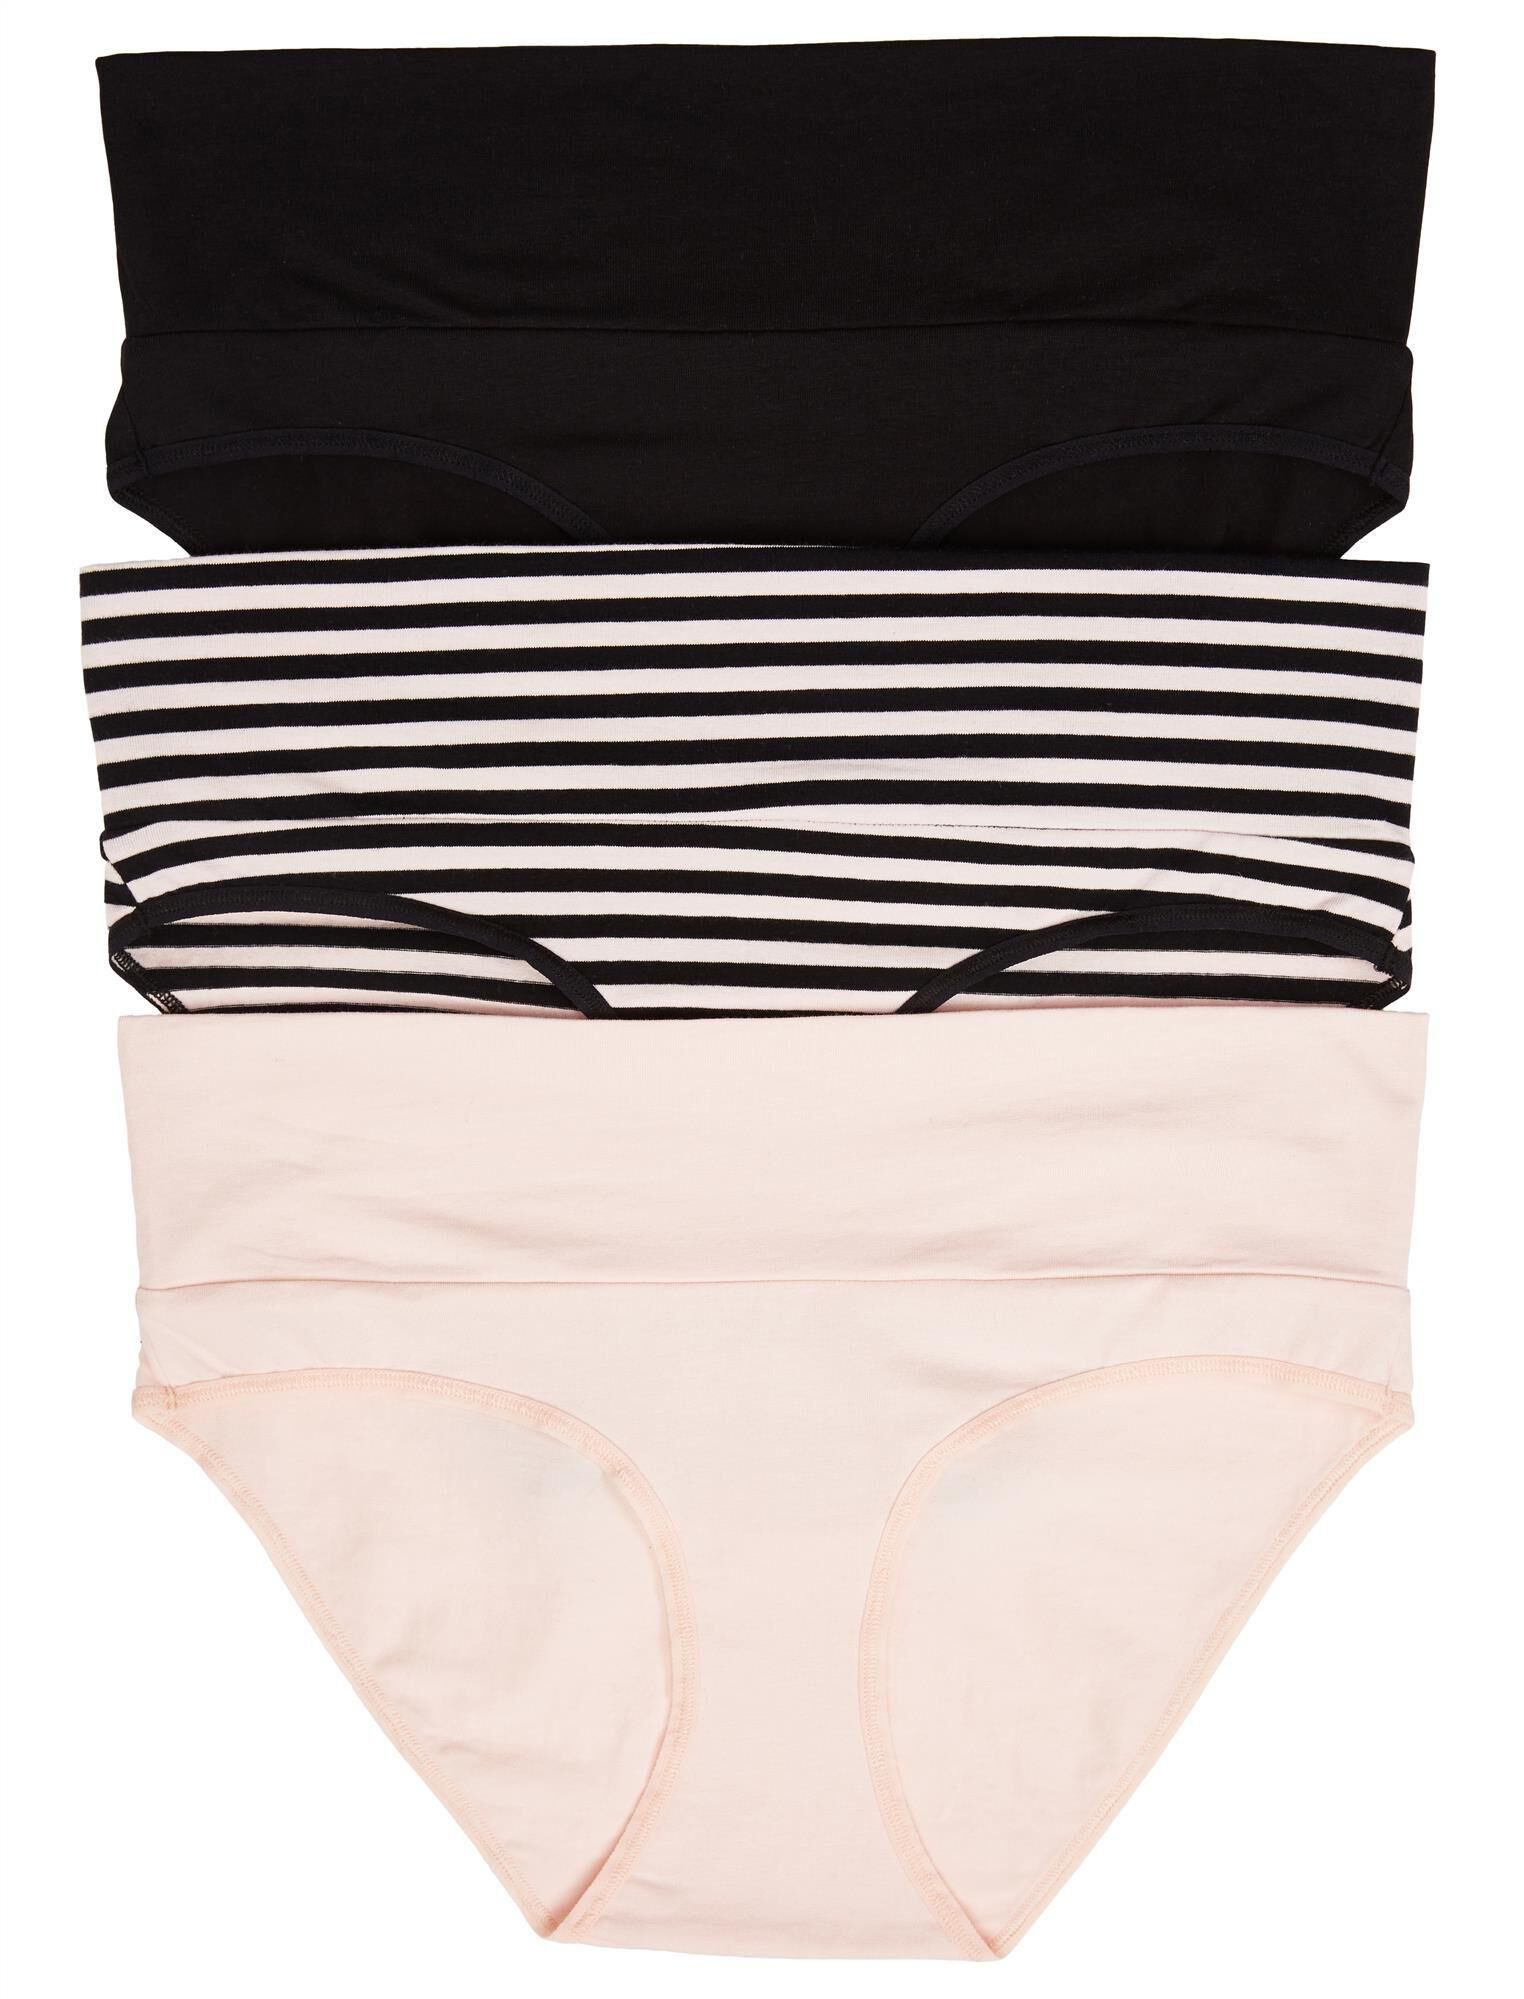 Maternity Fold Over Panties (3 Pack)